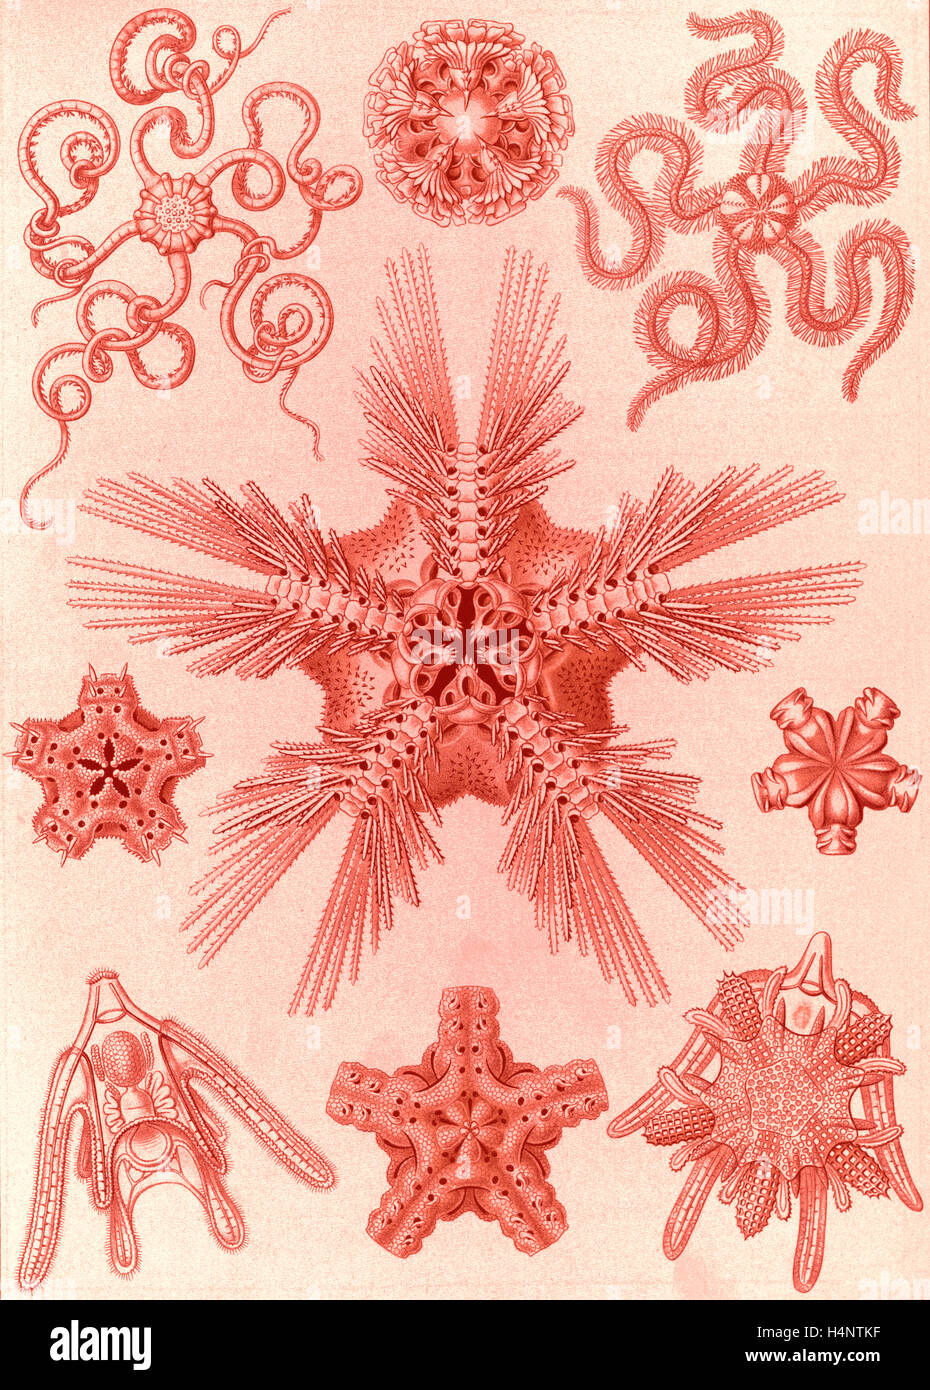 Illustration shows marine invertebrates related to starfish. Ophiodea. - Schlangensterne, 1 print : color lithograph - Stock Image